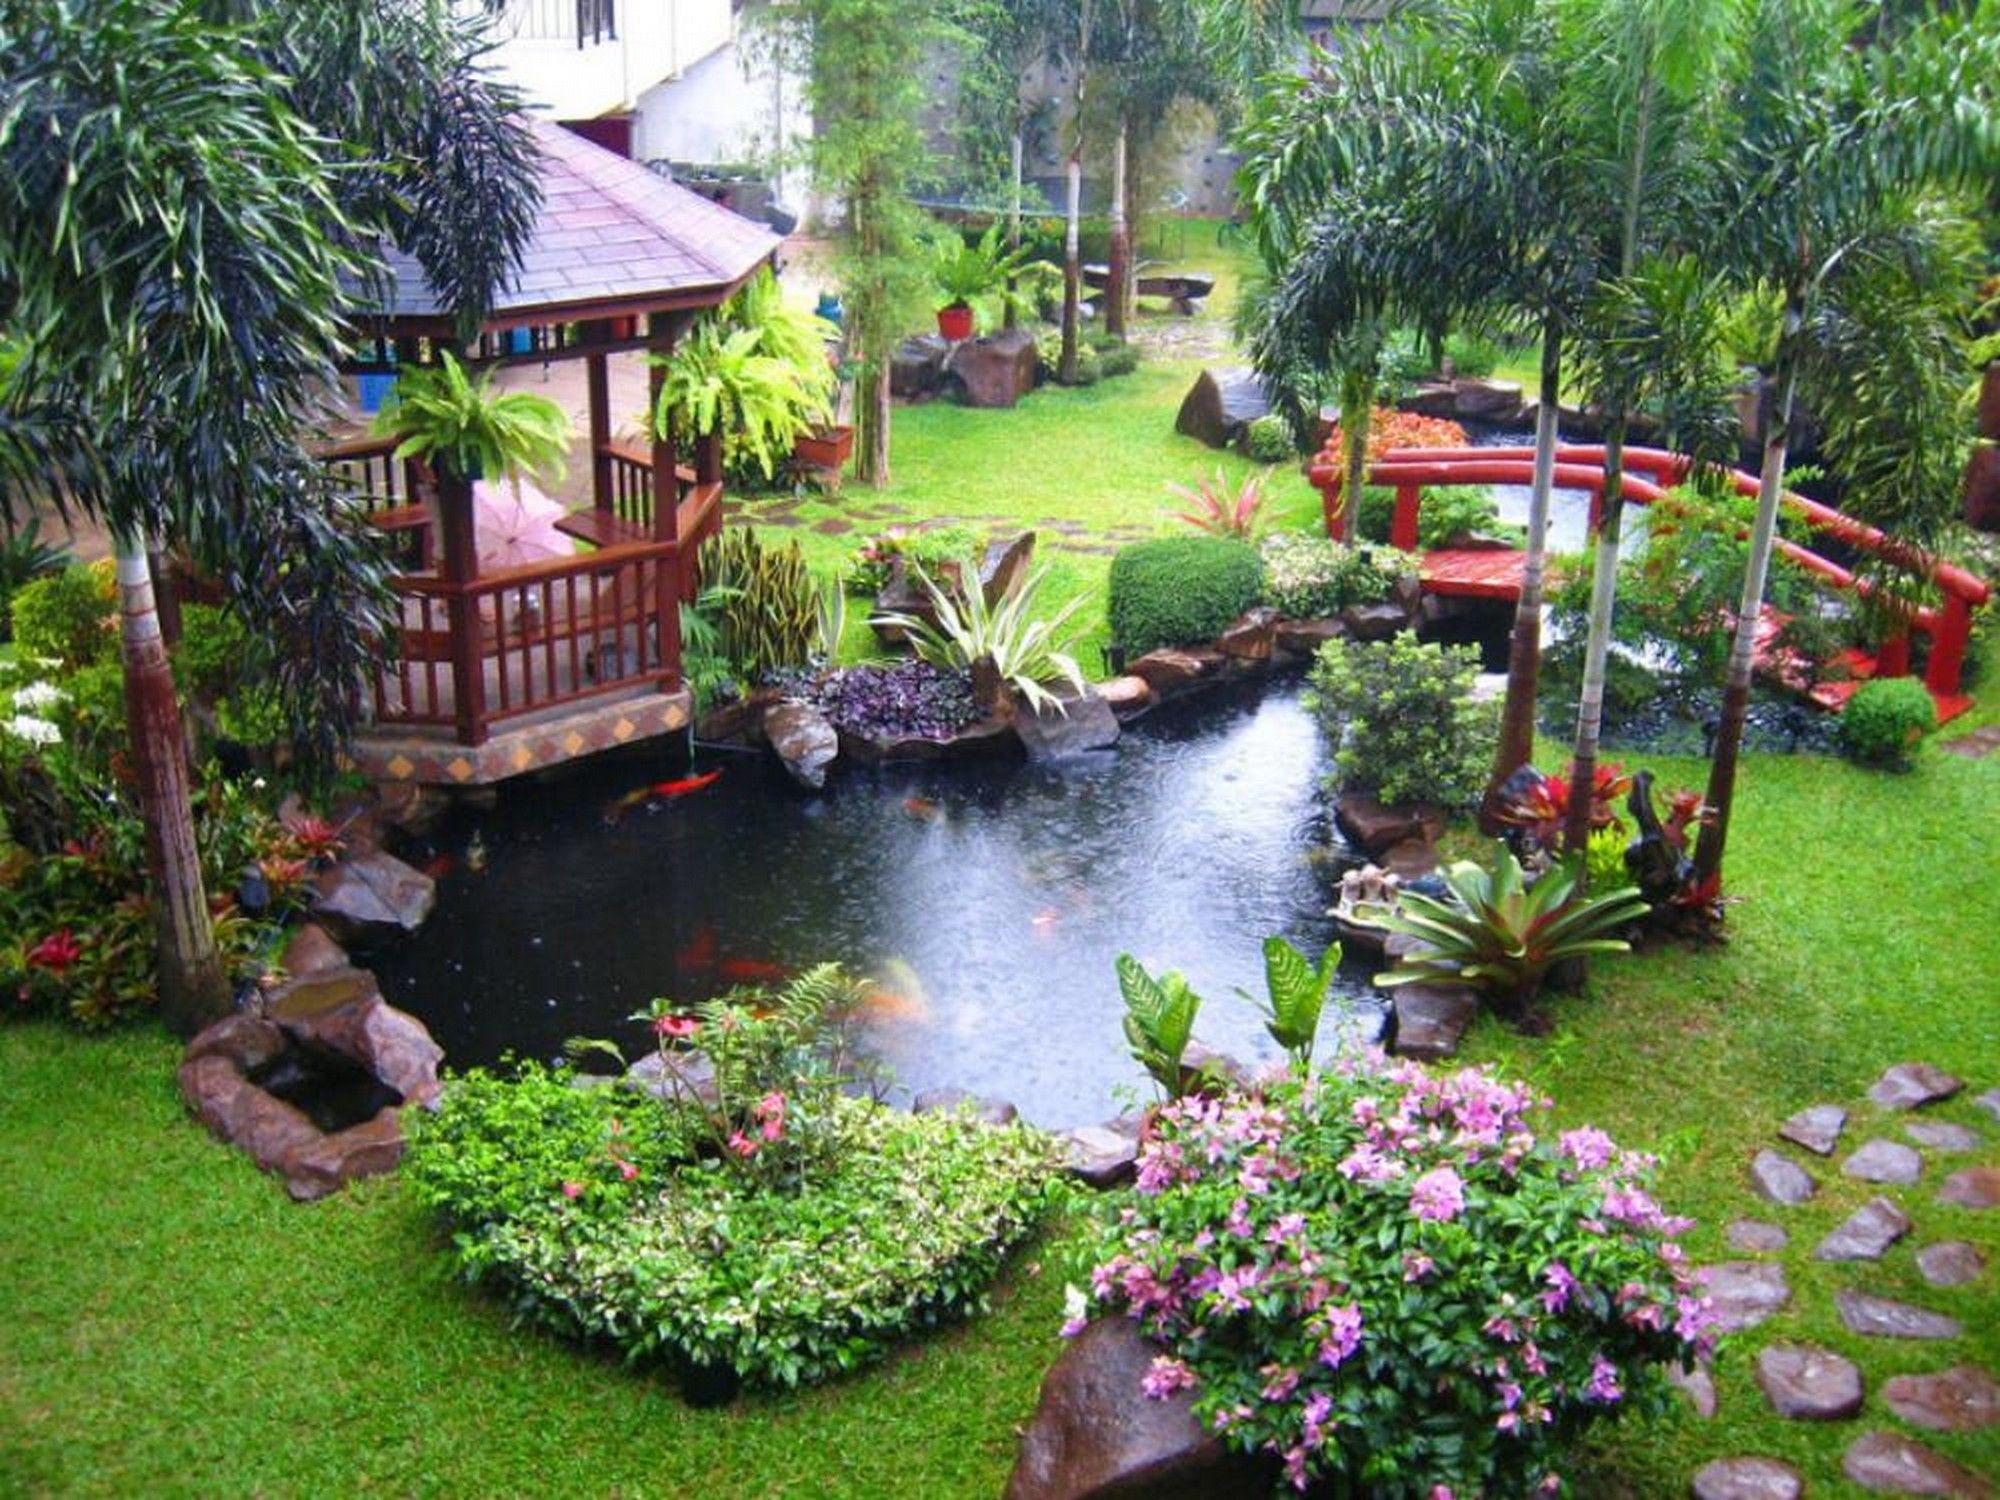 fish pond and gazebo with flower garden ideas Outdoor water